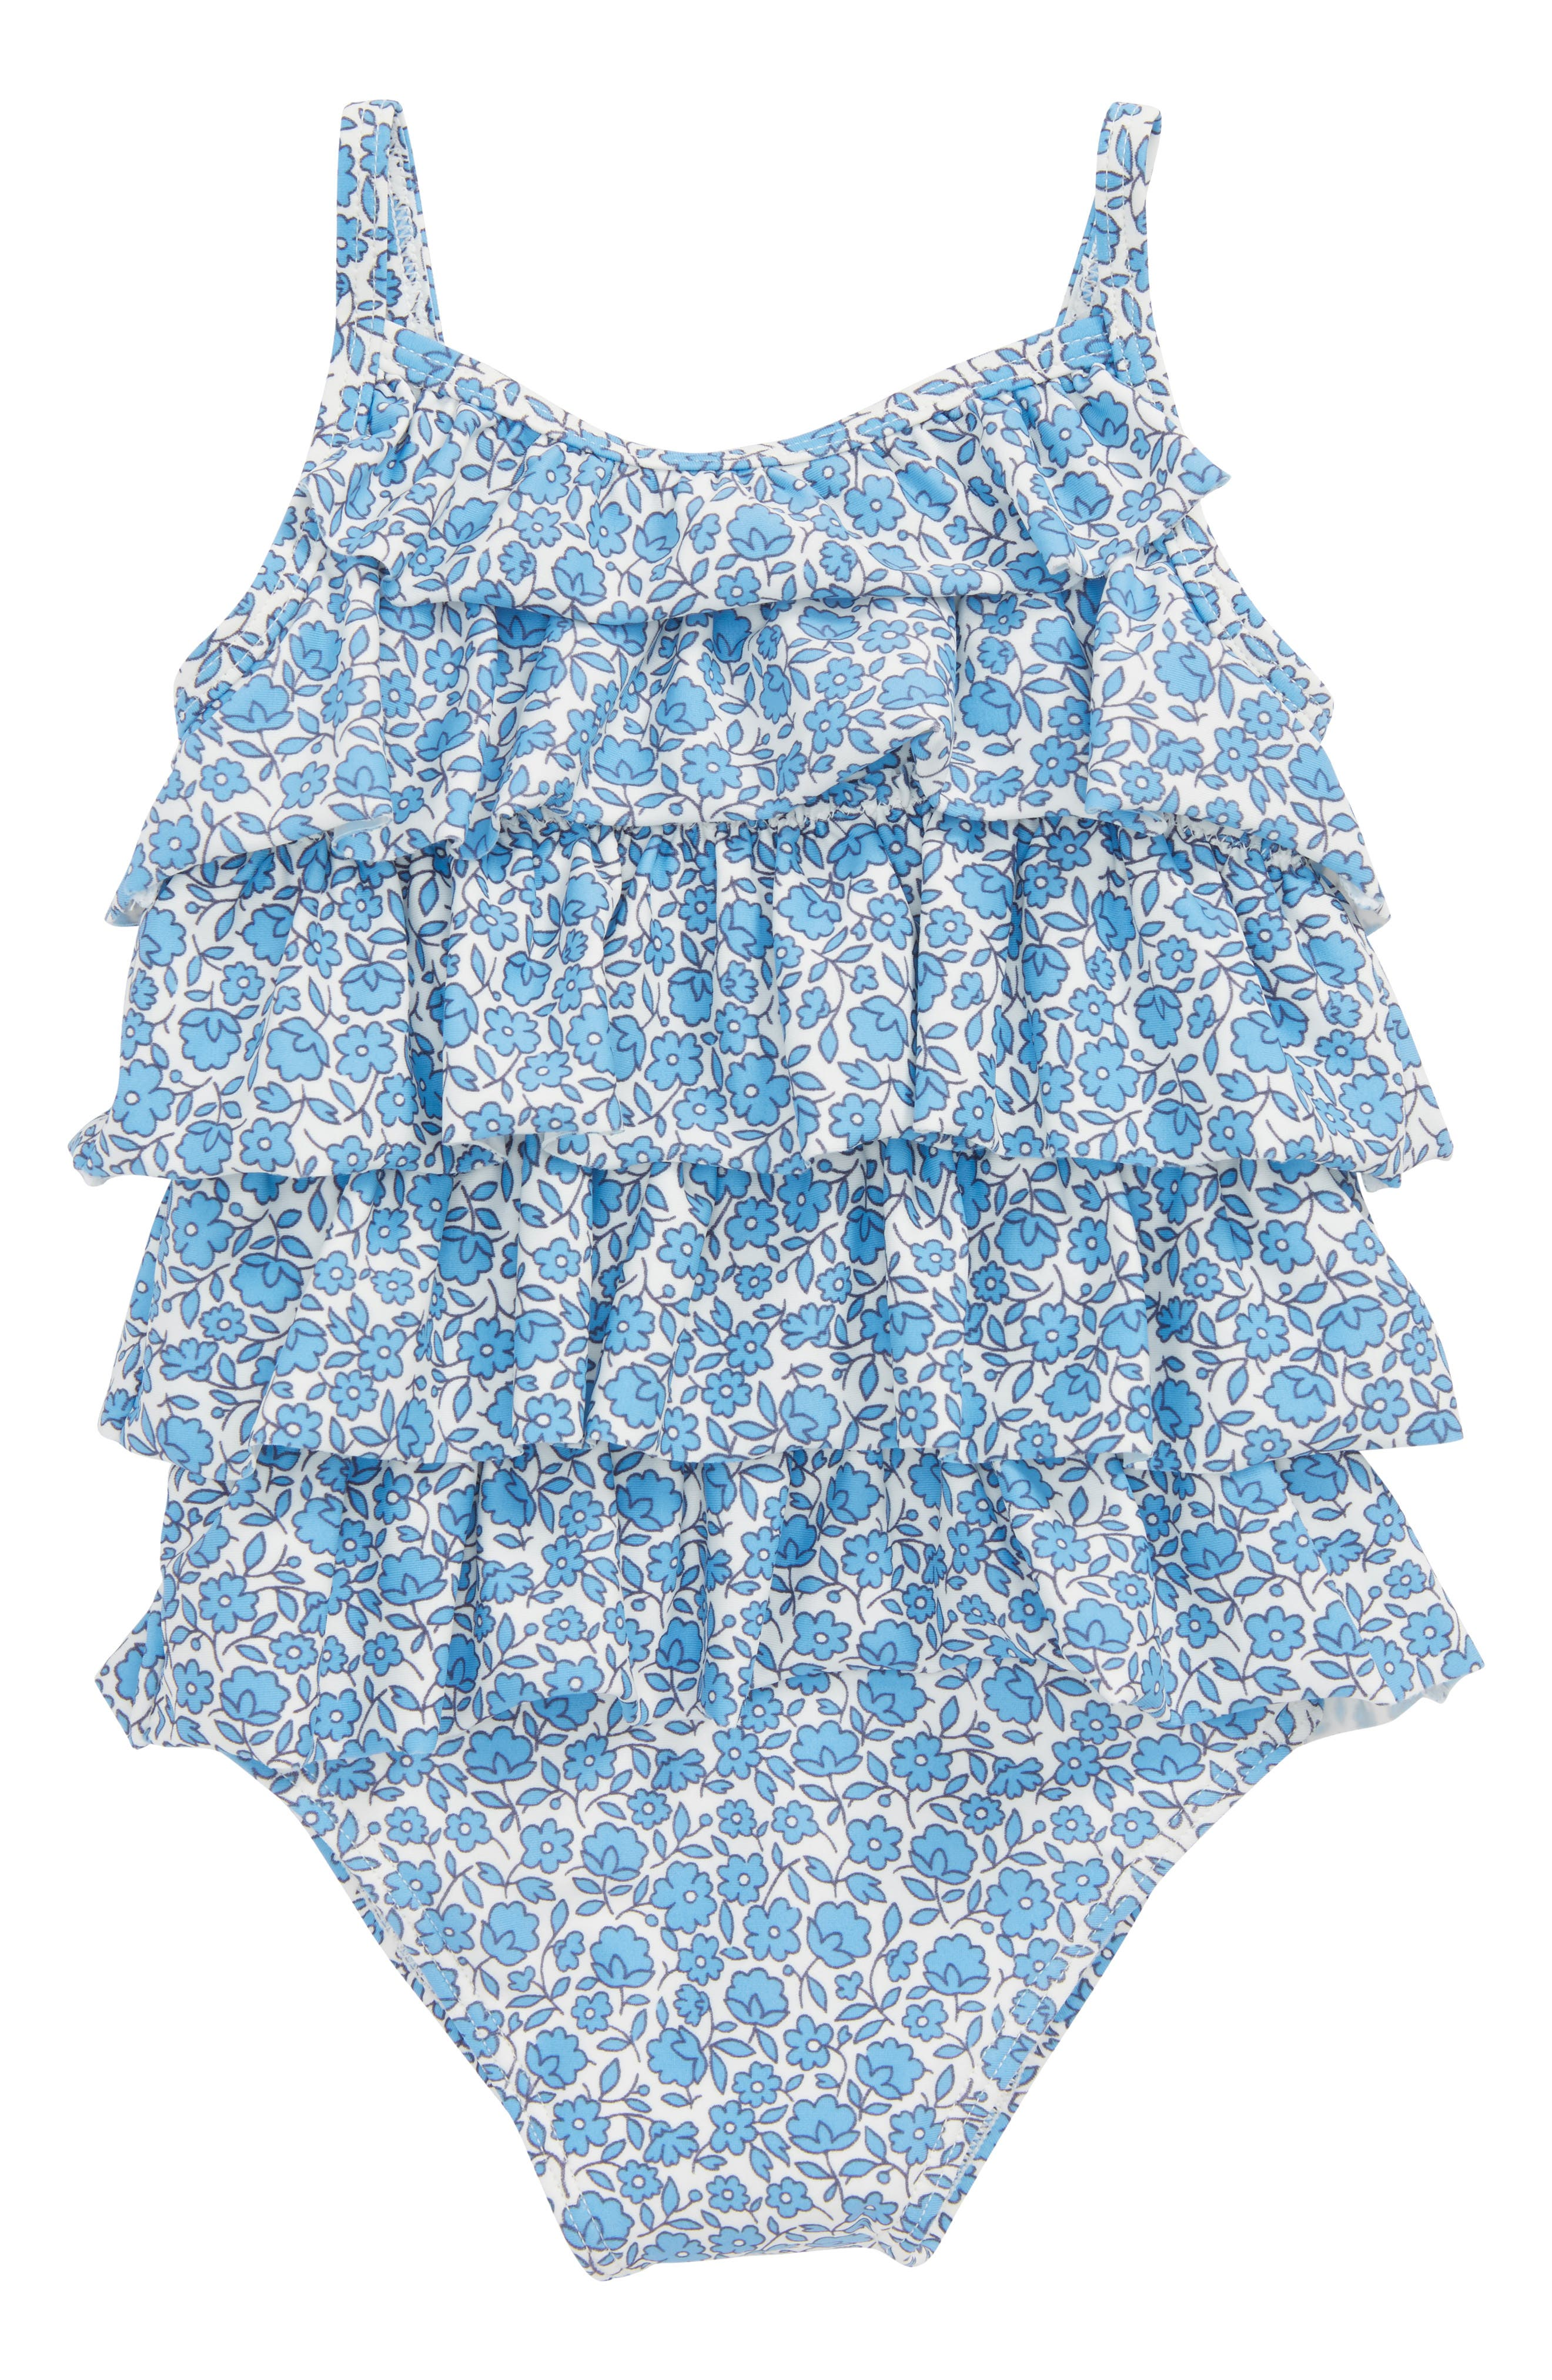 Summer Ruffle One-Piece Swimsuit,                         Main,                         color, Lake Blue/ Floral Toile